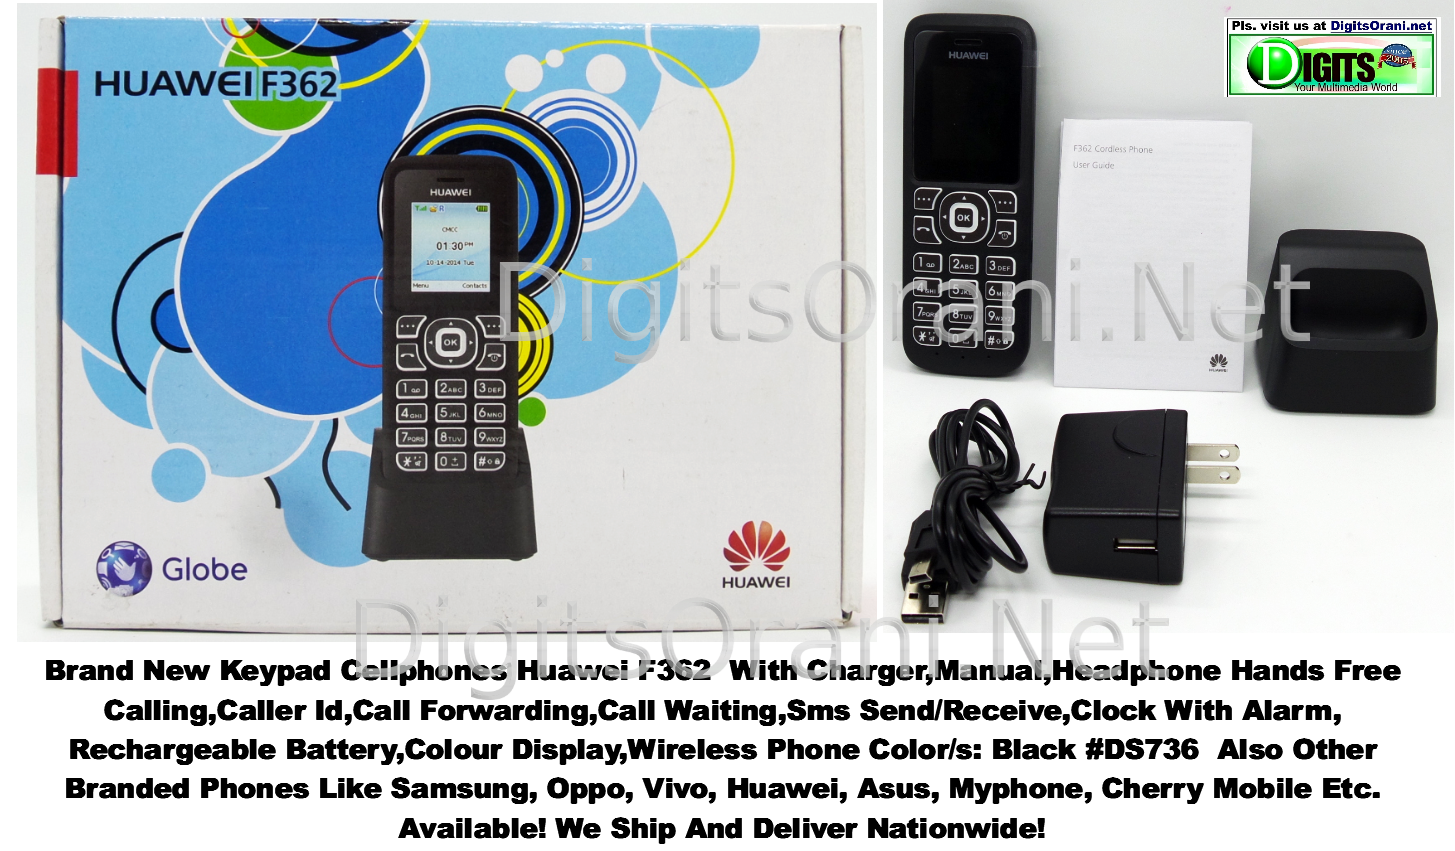 Original Keypad Cellphone Huawei F362 Hands Free Calling,Caller Id,Call  Forwarding,Call Waiting,Sms Send/Receive,Clock With Alarm,Rechargeable